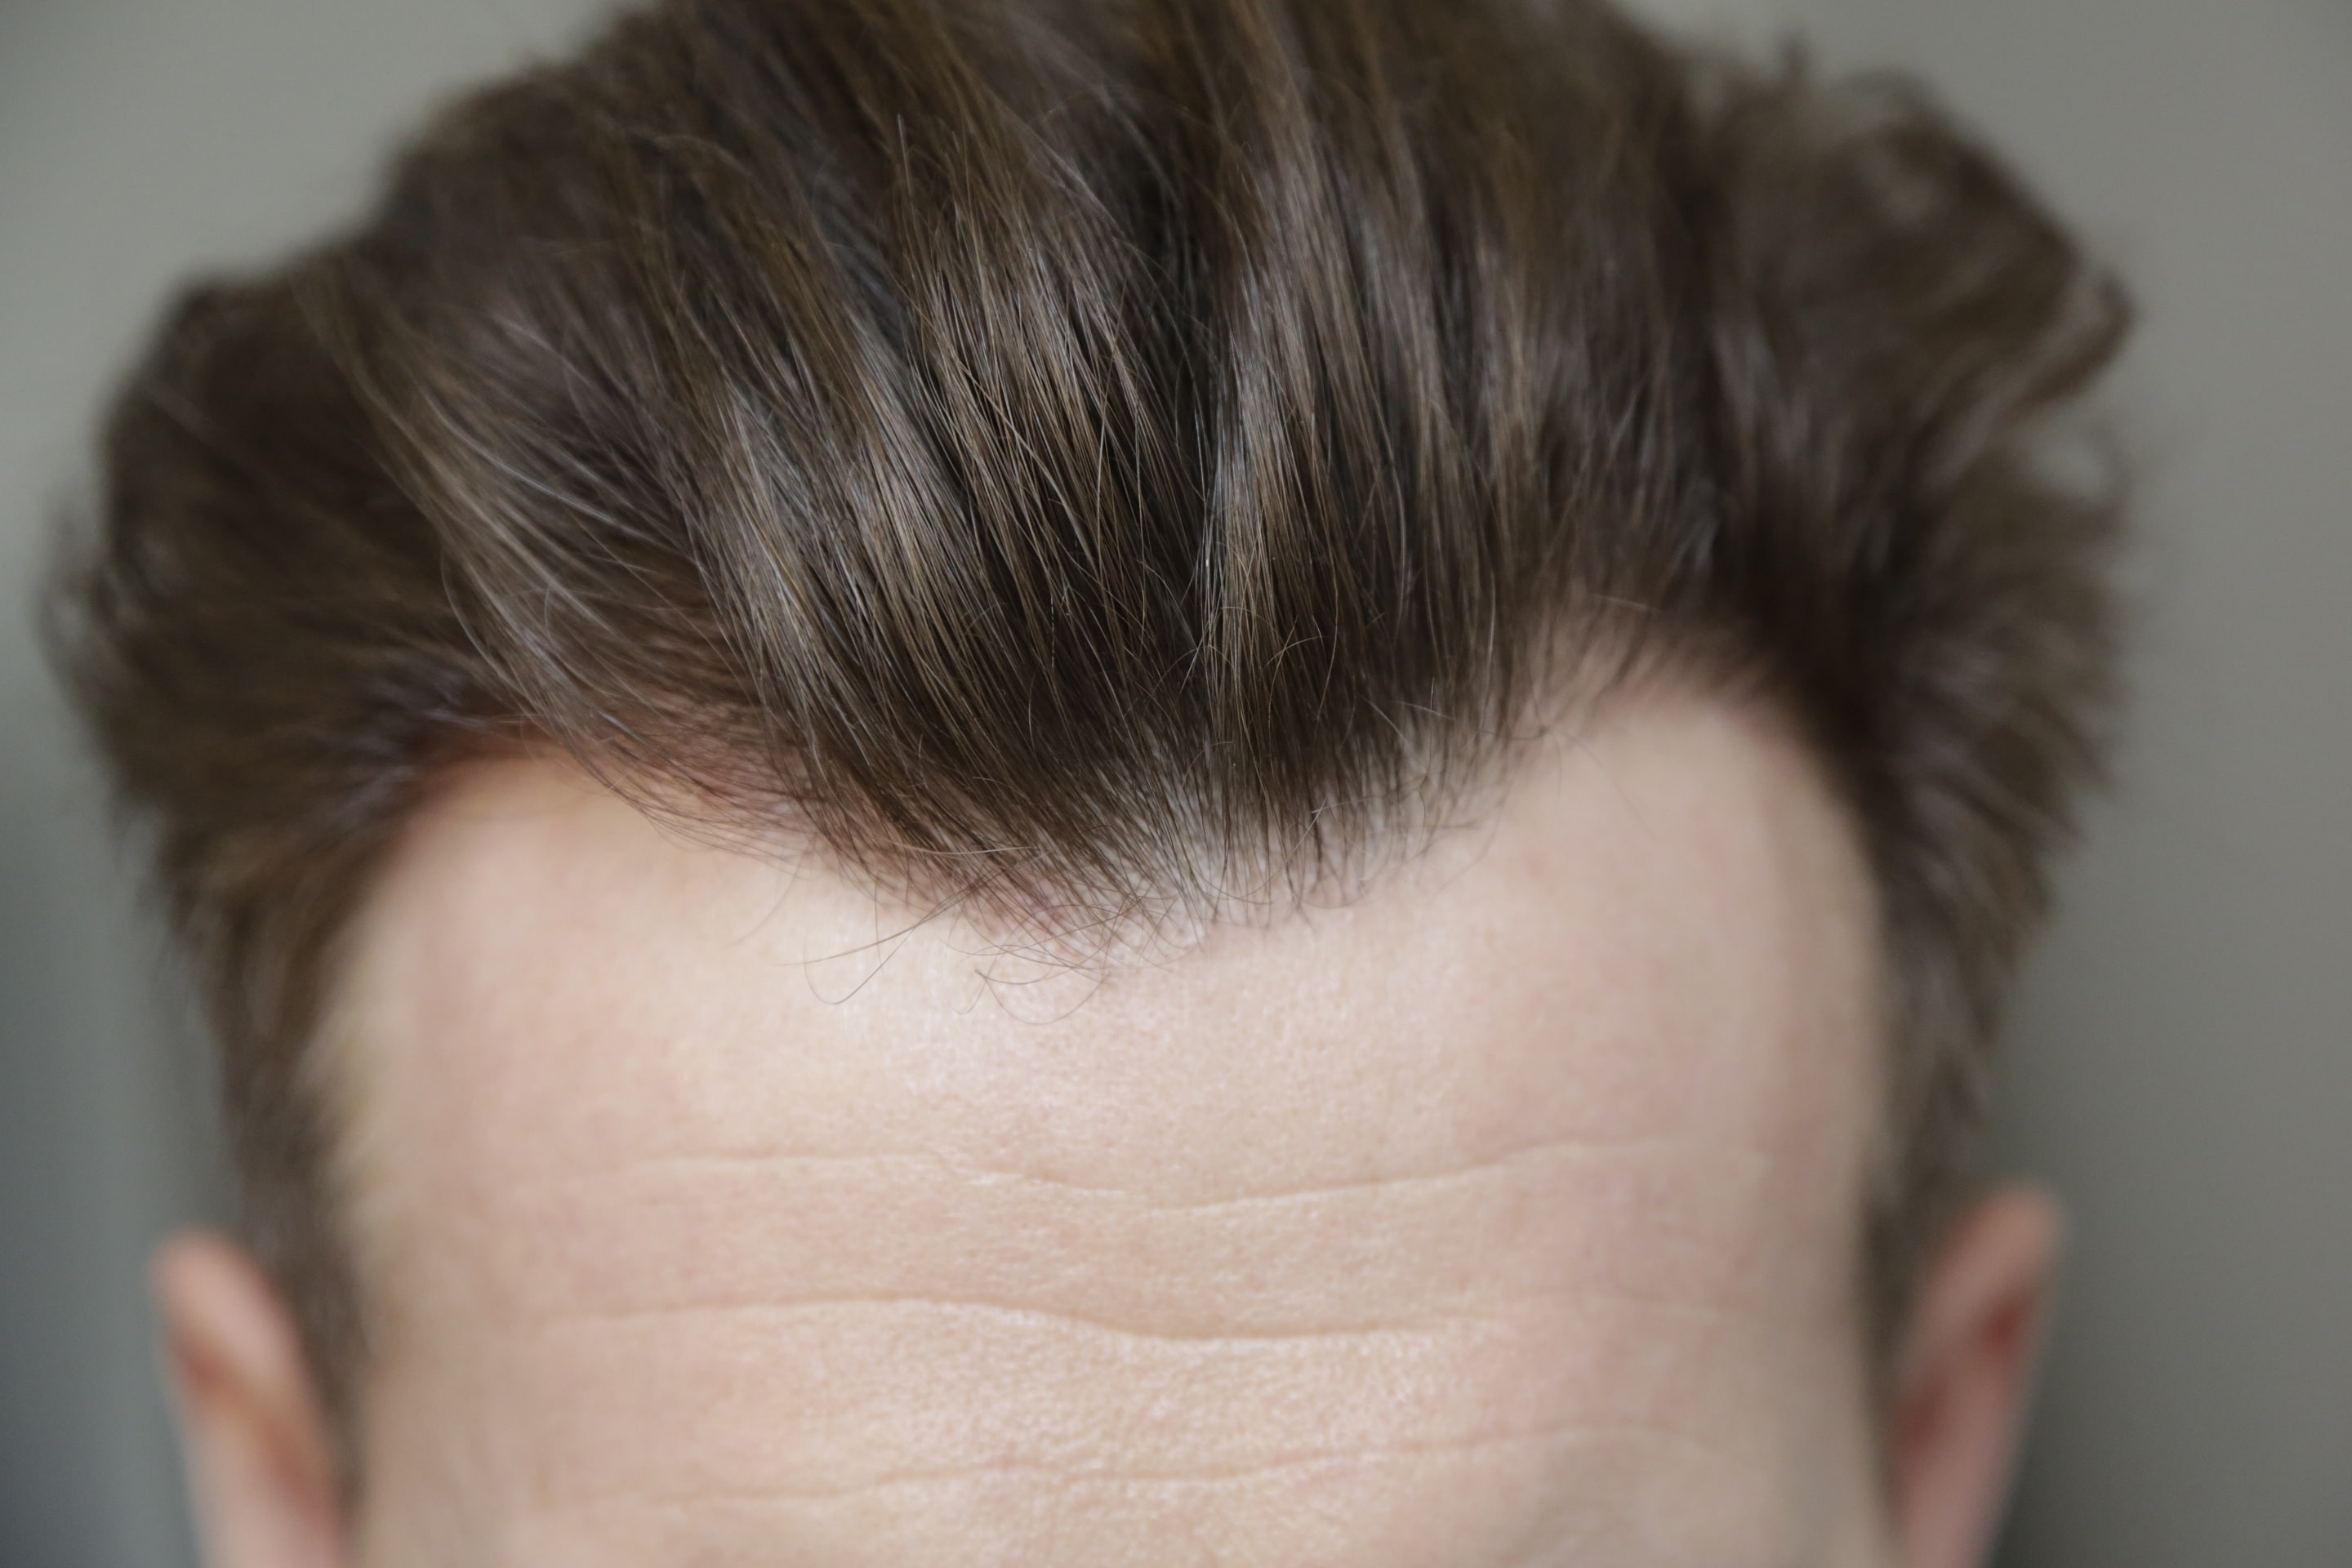 final result hair transplant fue 1 year